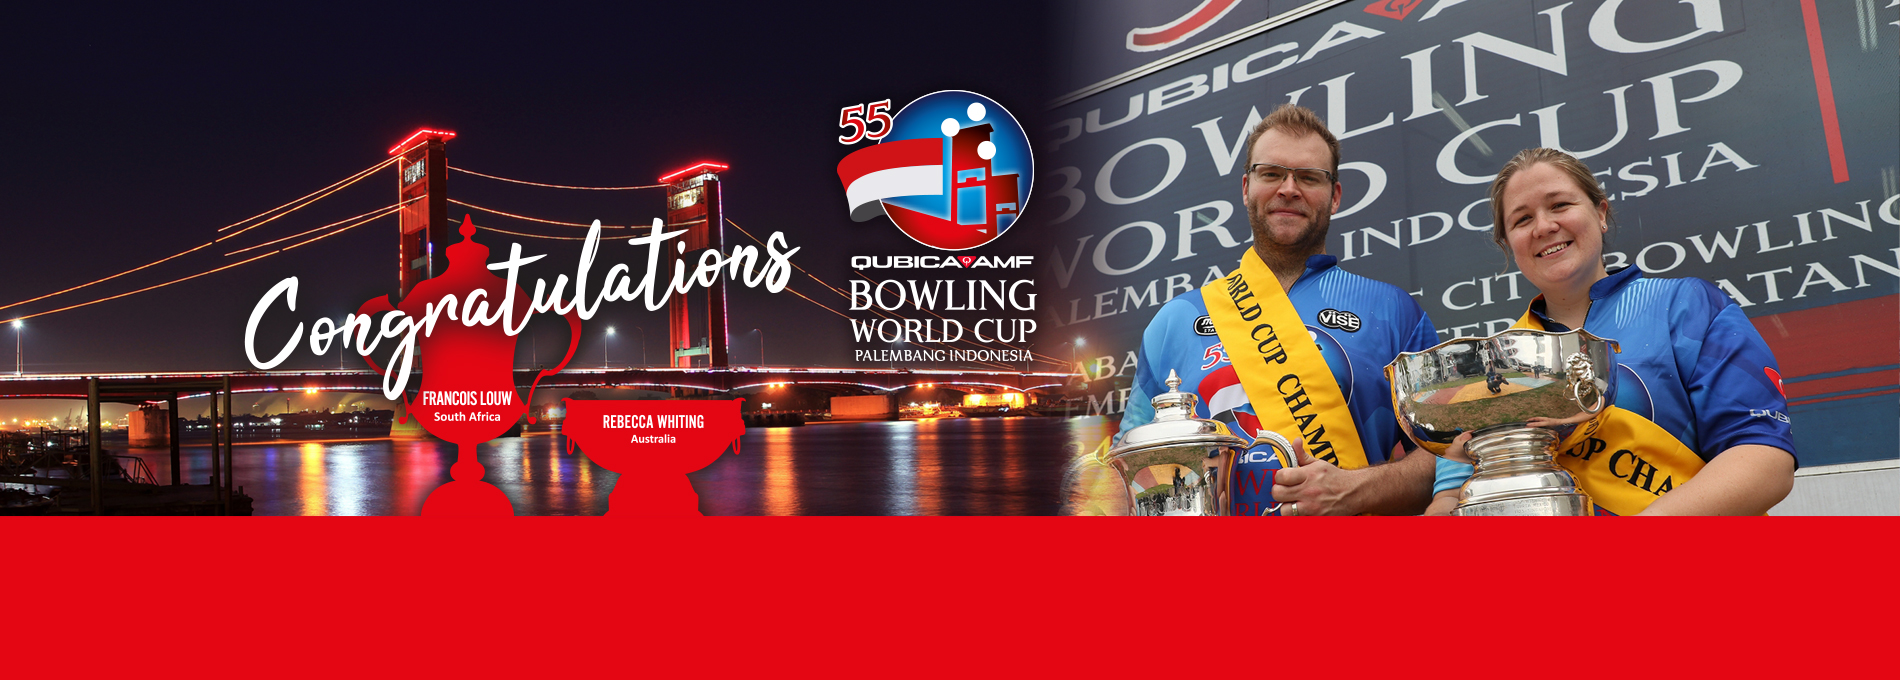 55th QubicaAMF Bowling World Cup winners Congratulations